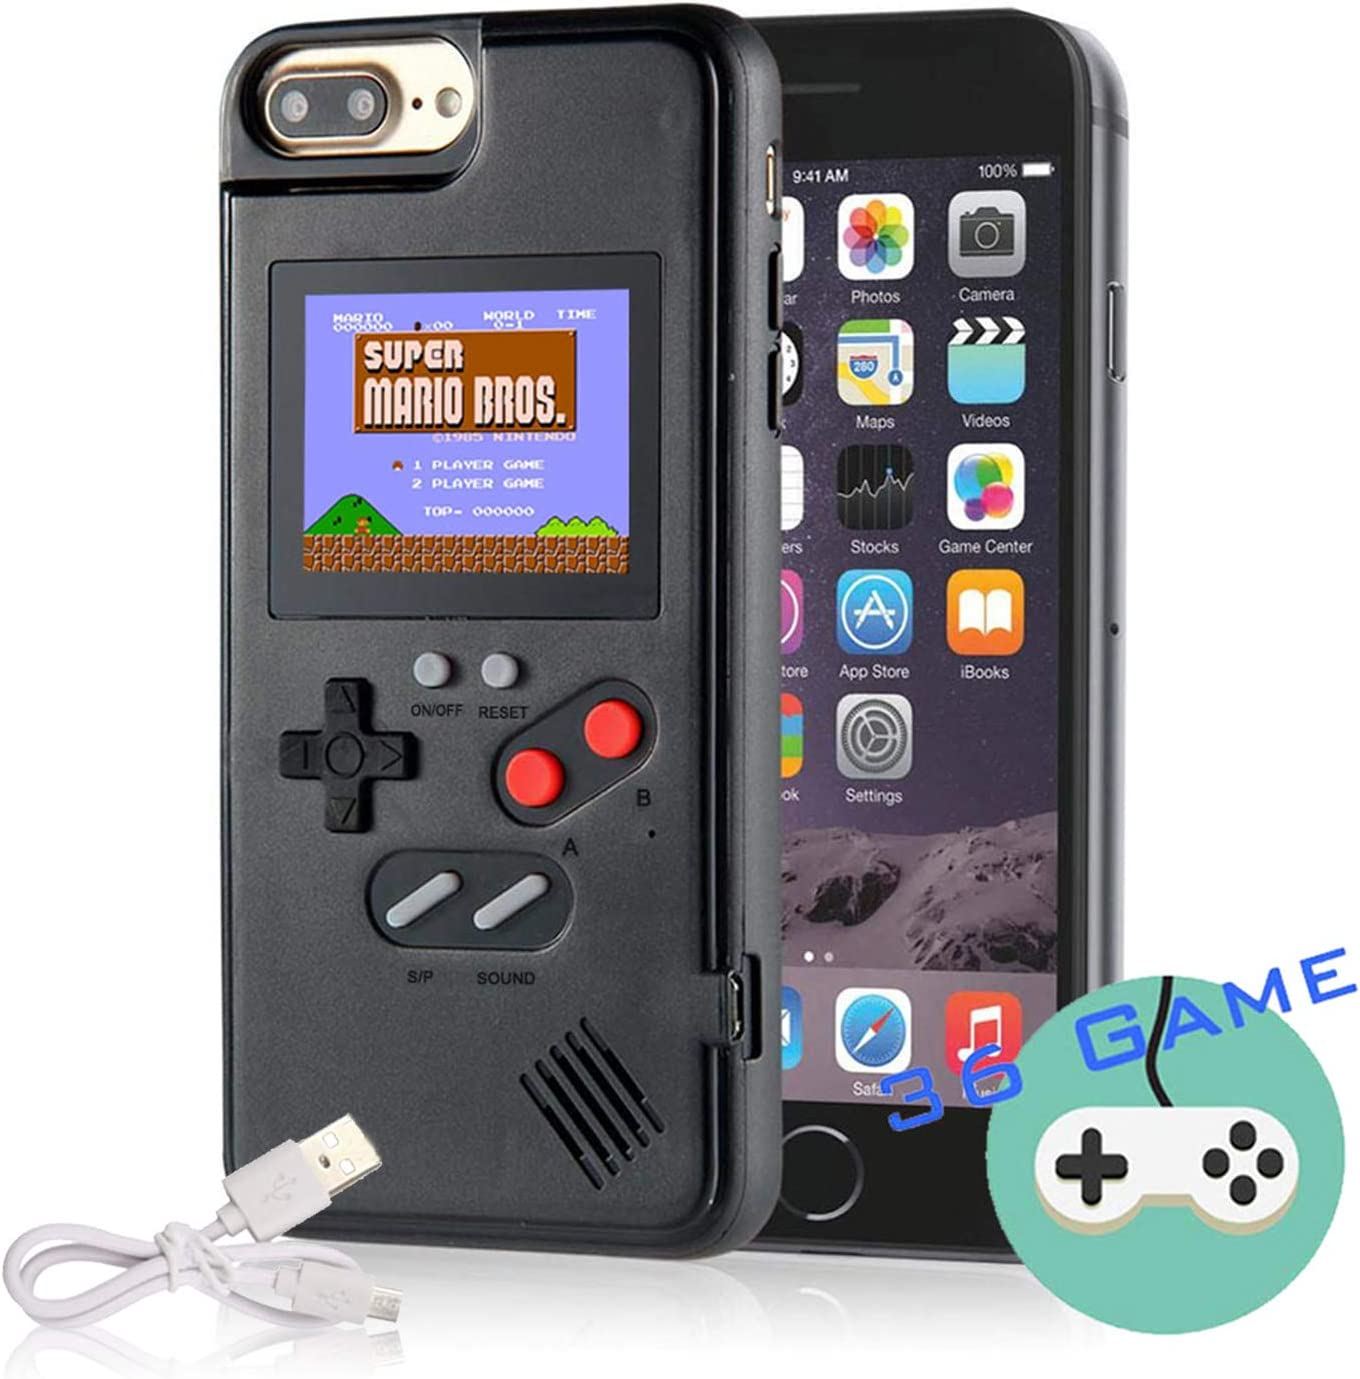 Gameboy Case for iPhone, Autbye Retro 3D Phone Case Game Console with 36 Classic Game, Color Display Shockproof Video Game Phone Case for iPhone (for iPhone 6/6s/7/8, Black)